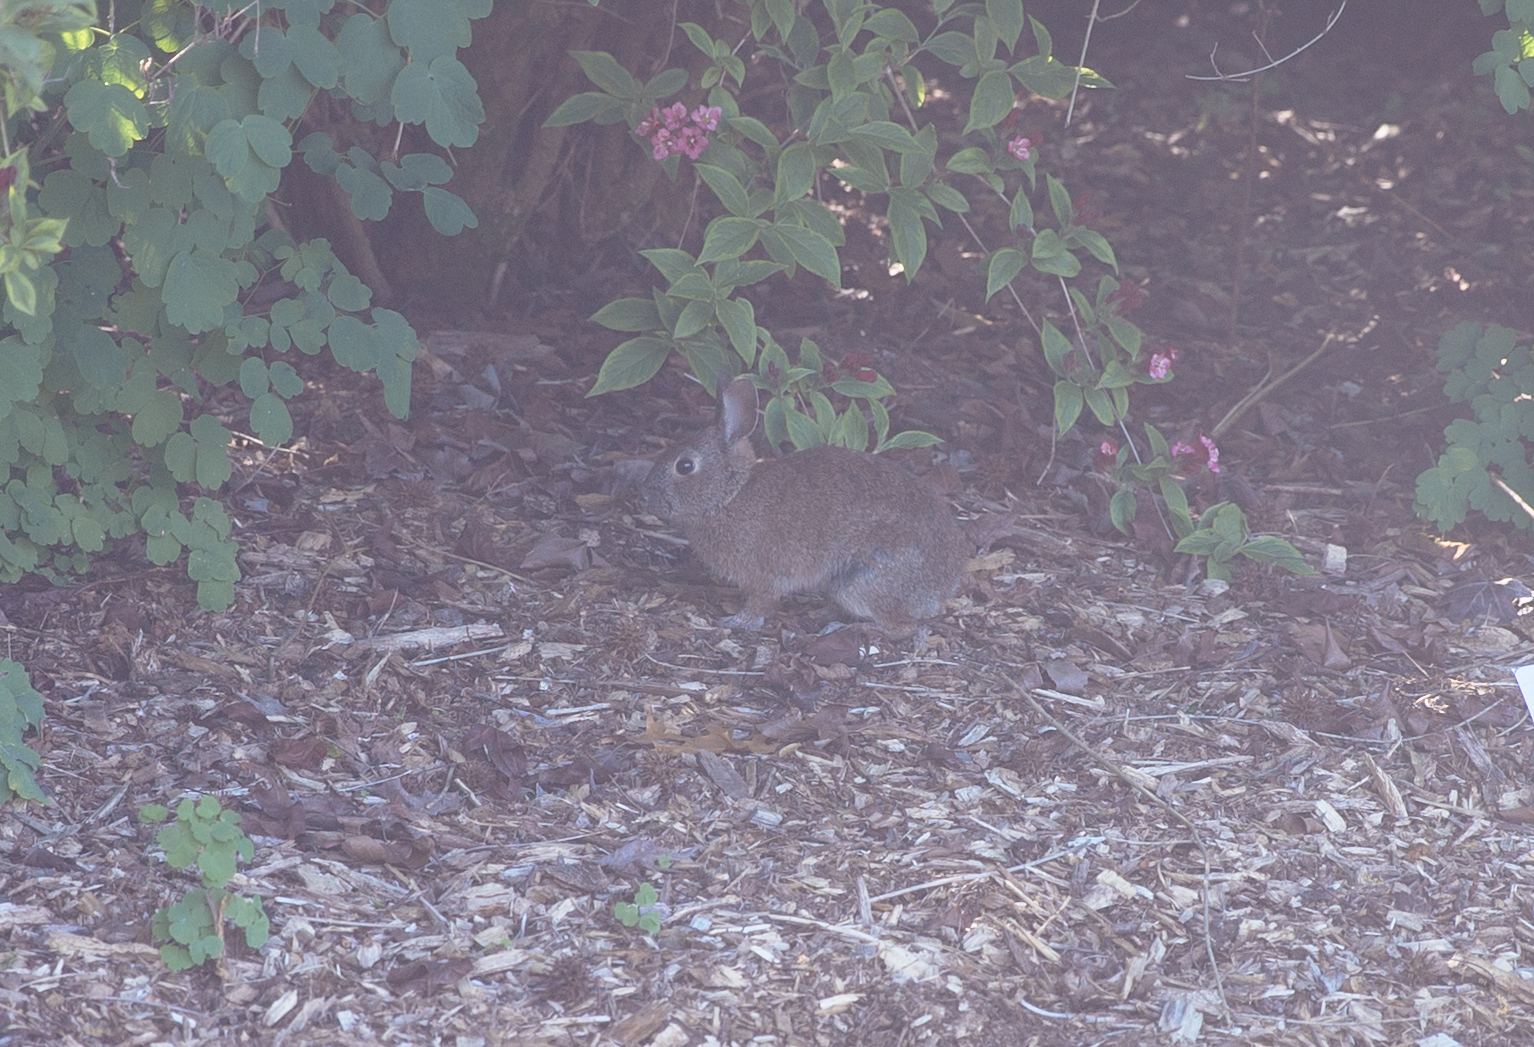 A very camouflaged bunny